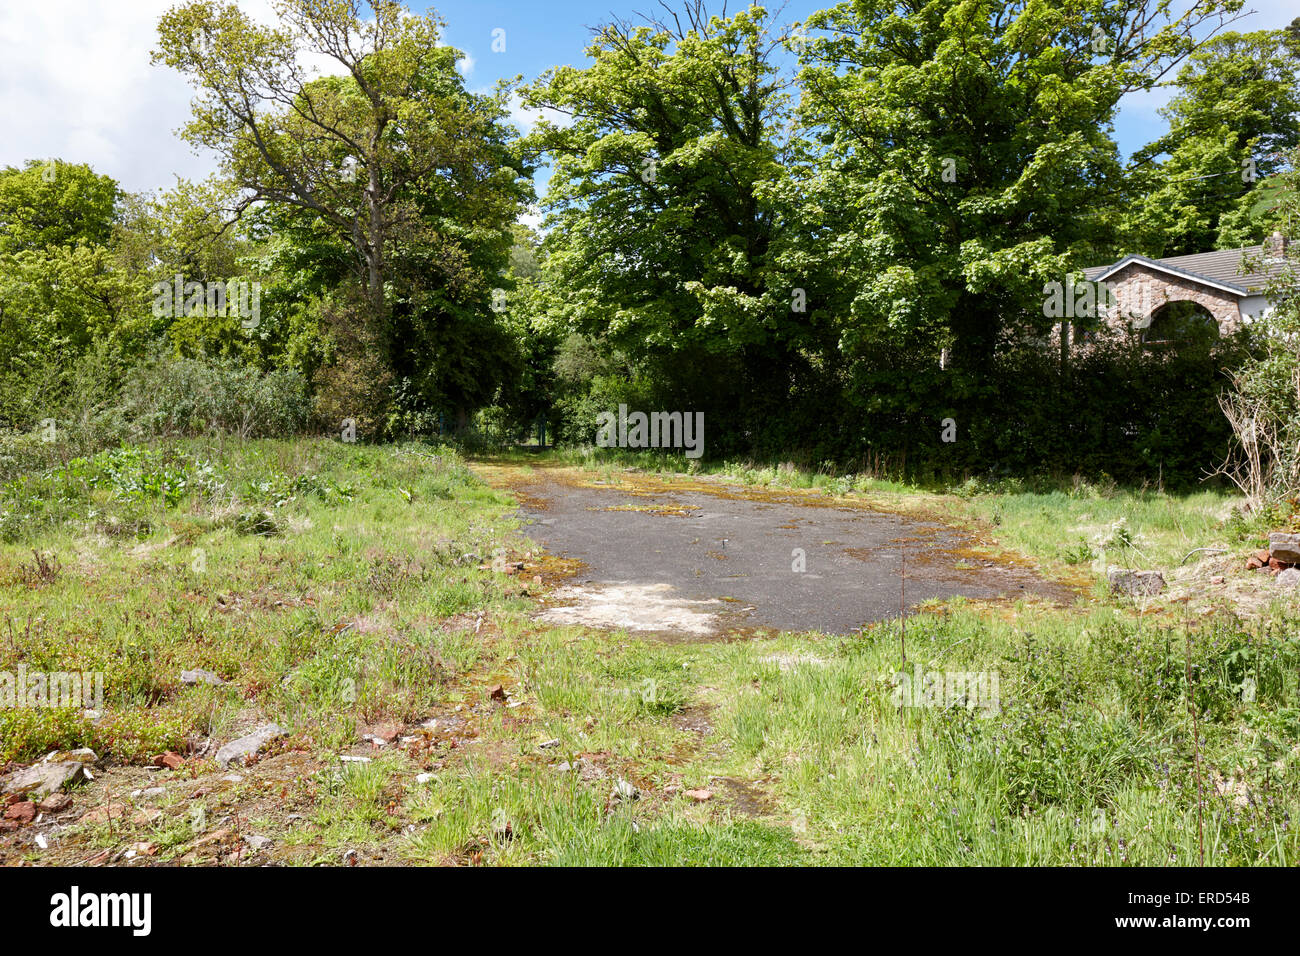 empty unused former house site in rural location Cushendall County Antrim Northern Ireland UK - Stock Image